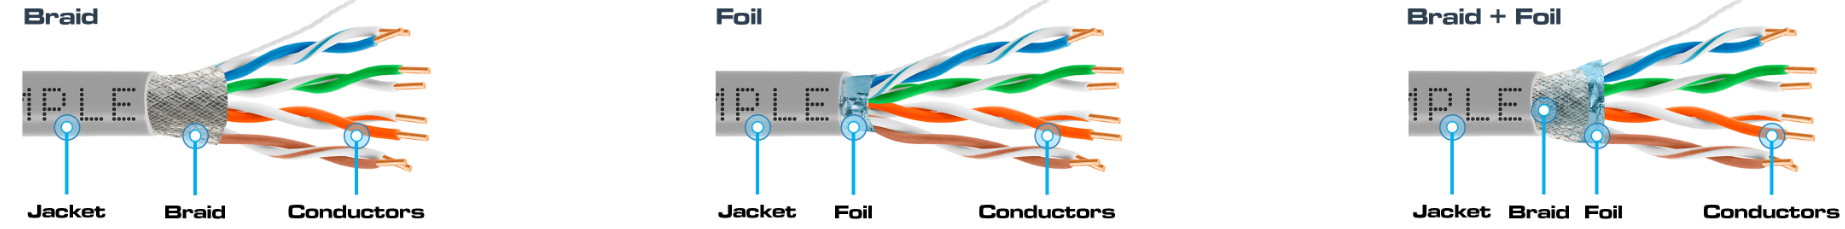 Cat5 cables BRAID and FOIL explanation